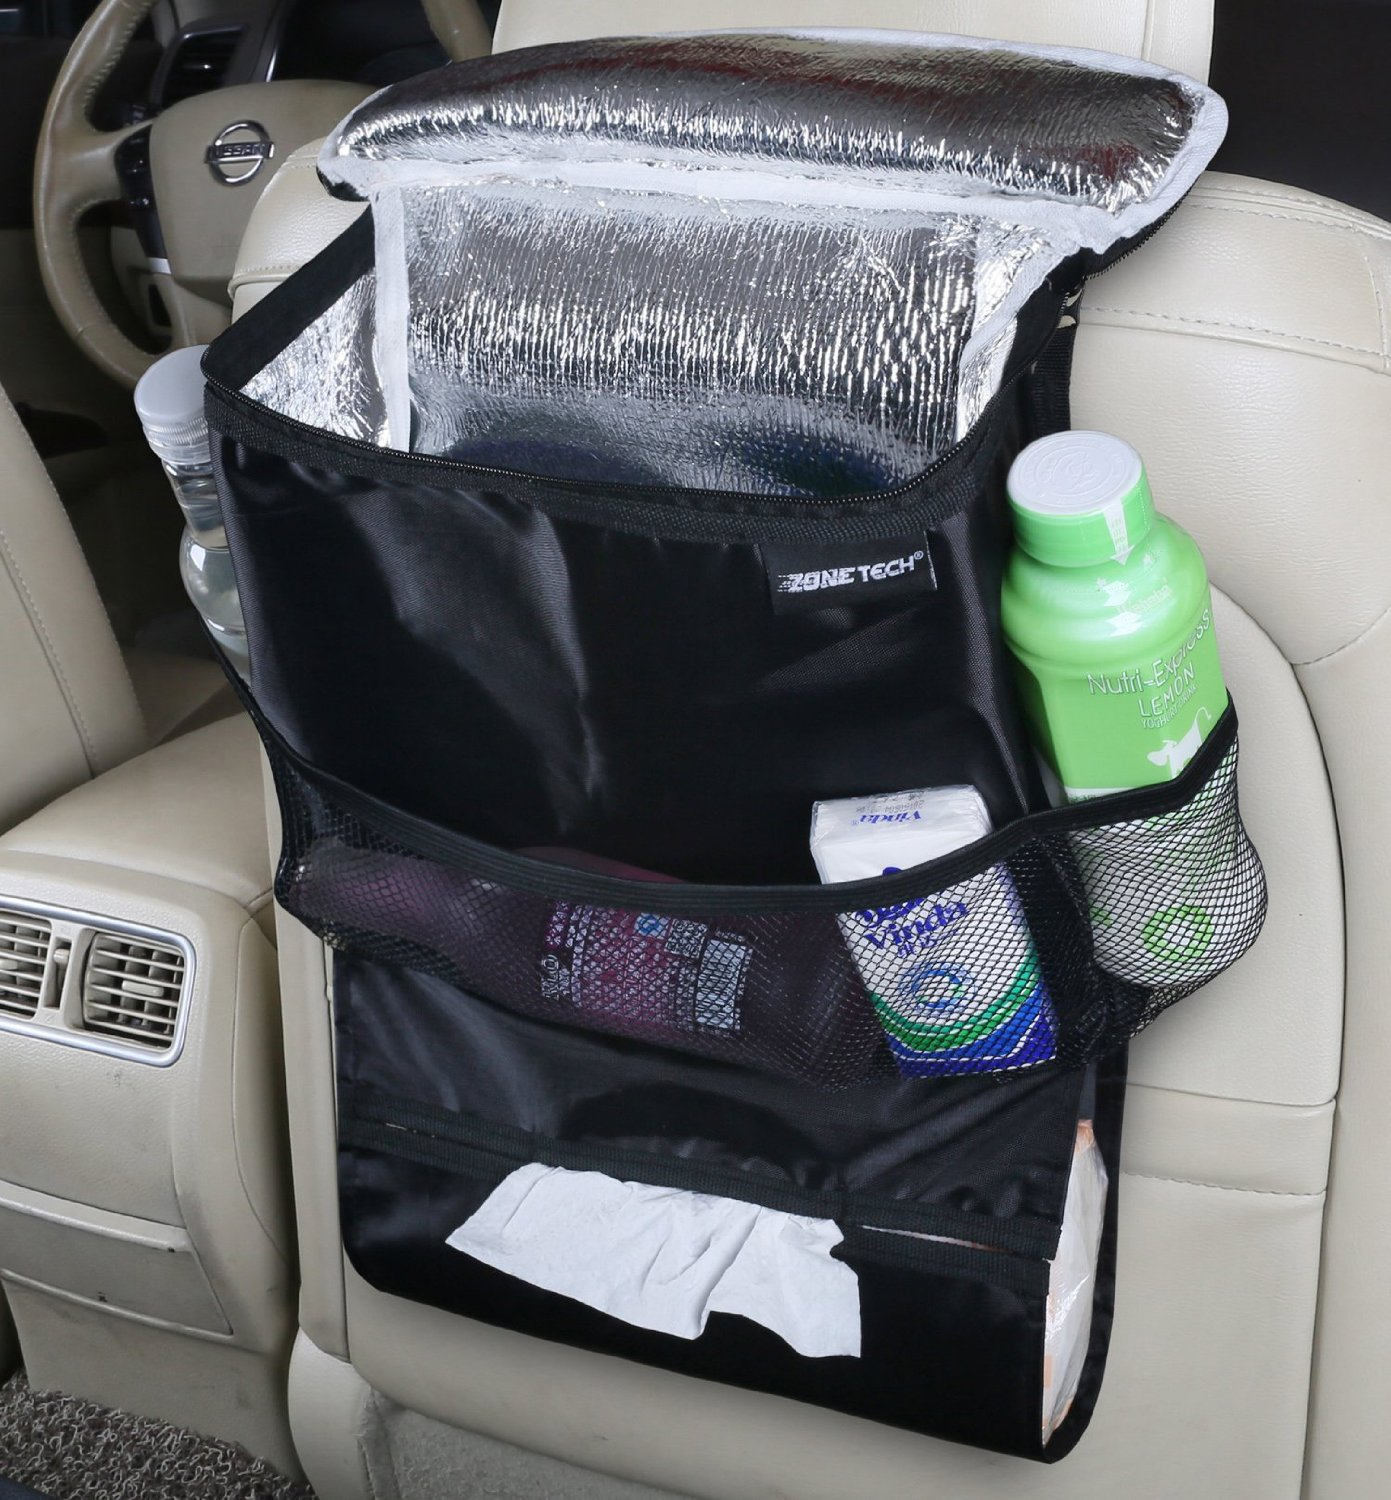 Zone Tech Travel Back Seat Organizer Insulated Food Drink Thermos Cool